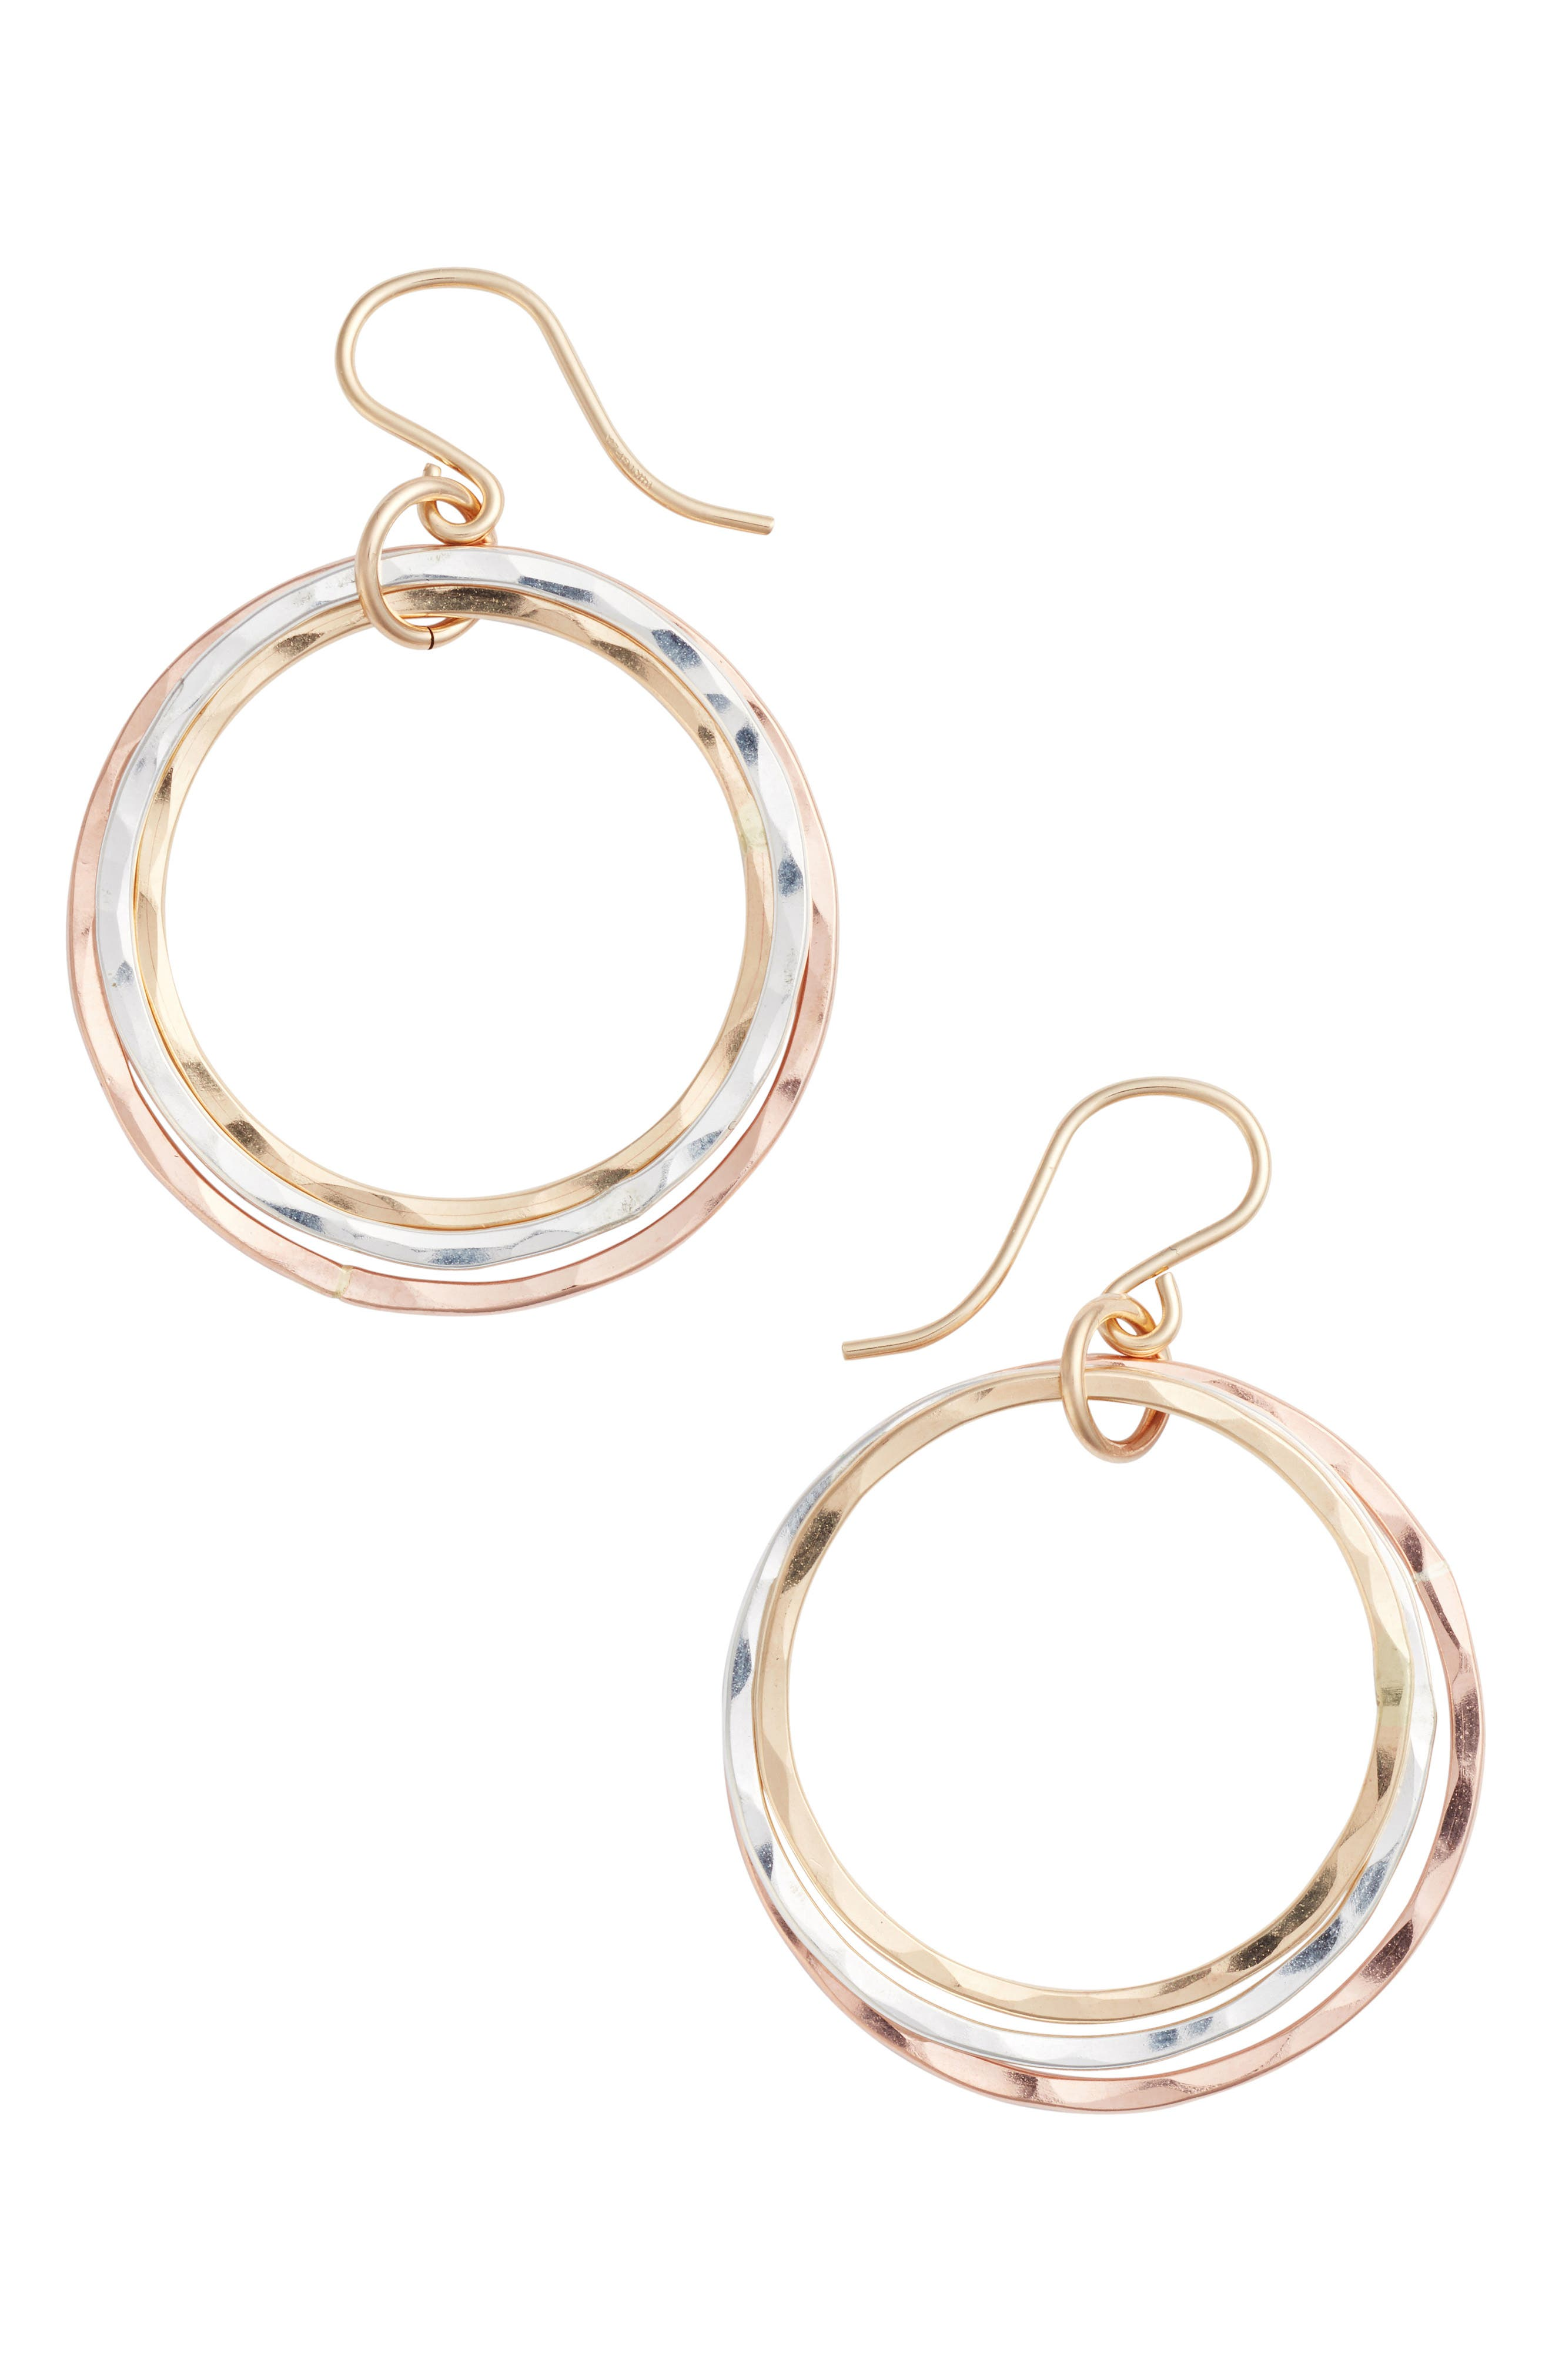 Wellness Small Hoop Earrings,                         Main,                         color, Gold/ Silver